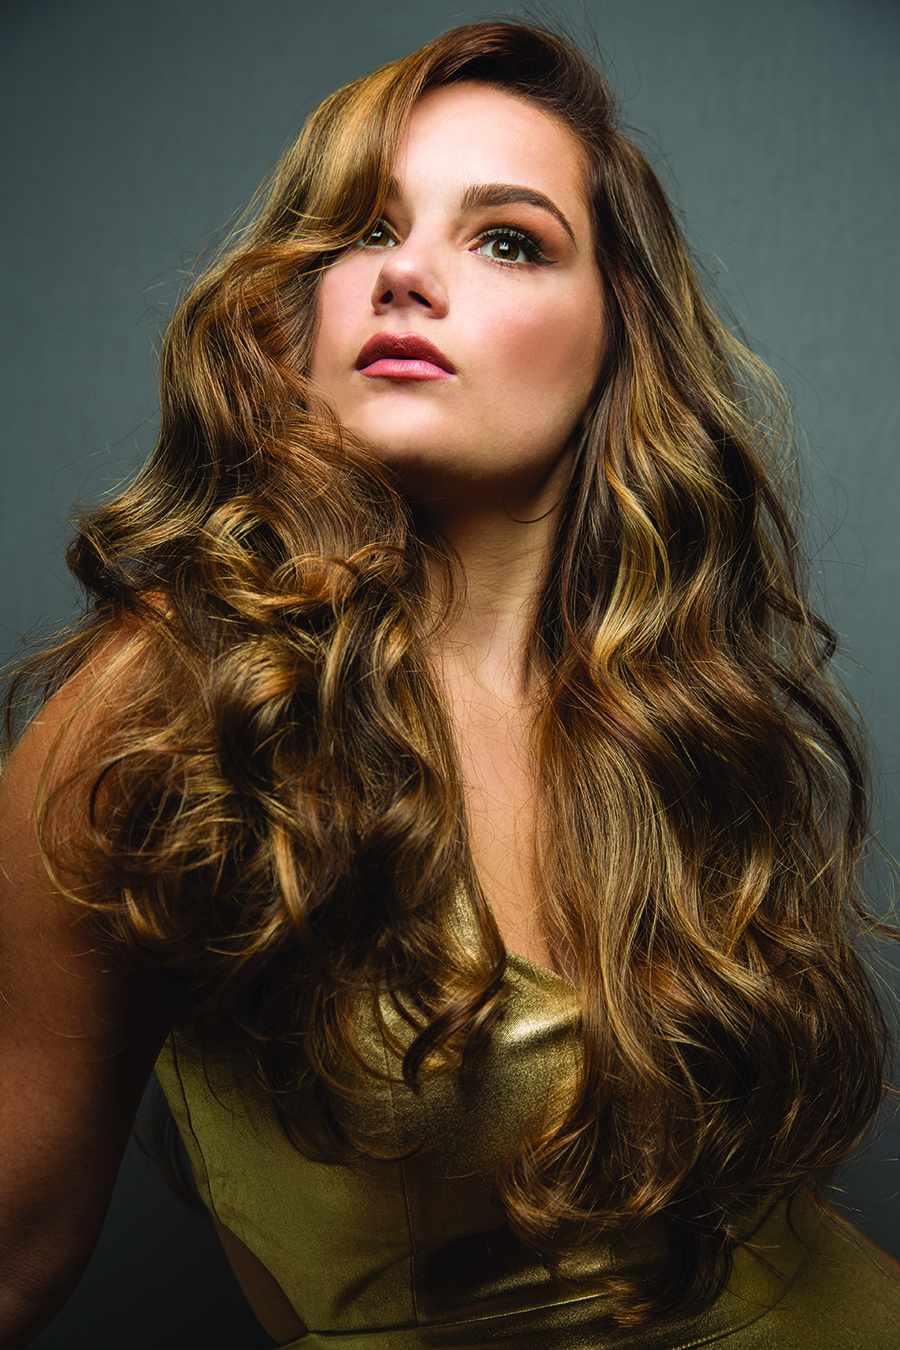 Color and style: Shannon Tully | Cut: Gray Armstrong | Photographer: Gray Armstrong Photography | Makeup: Karen Baladeras